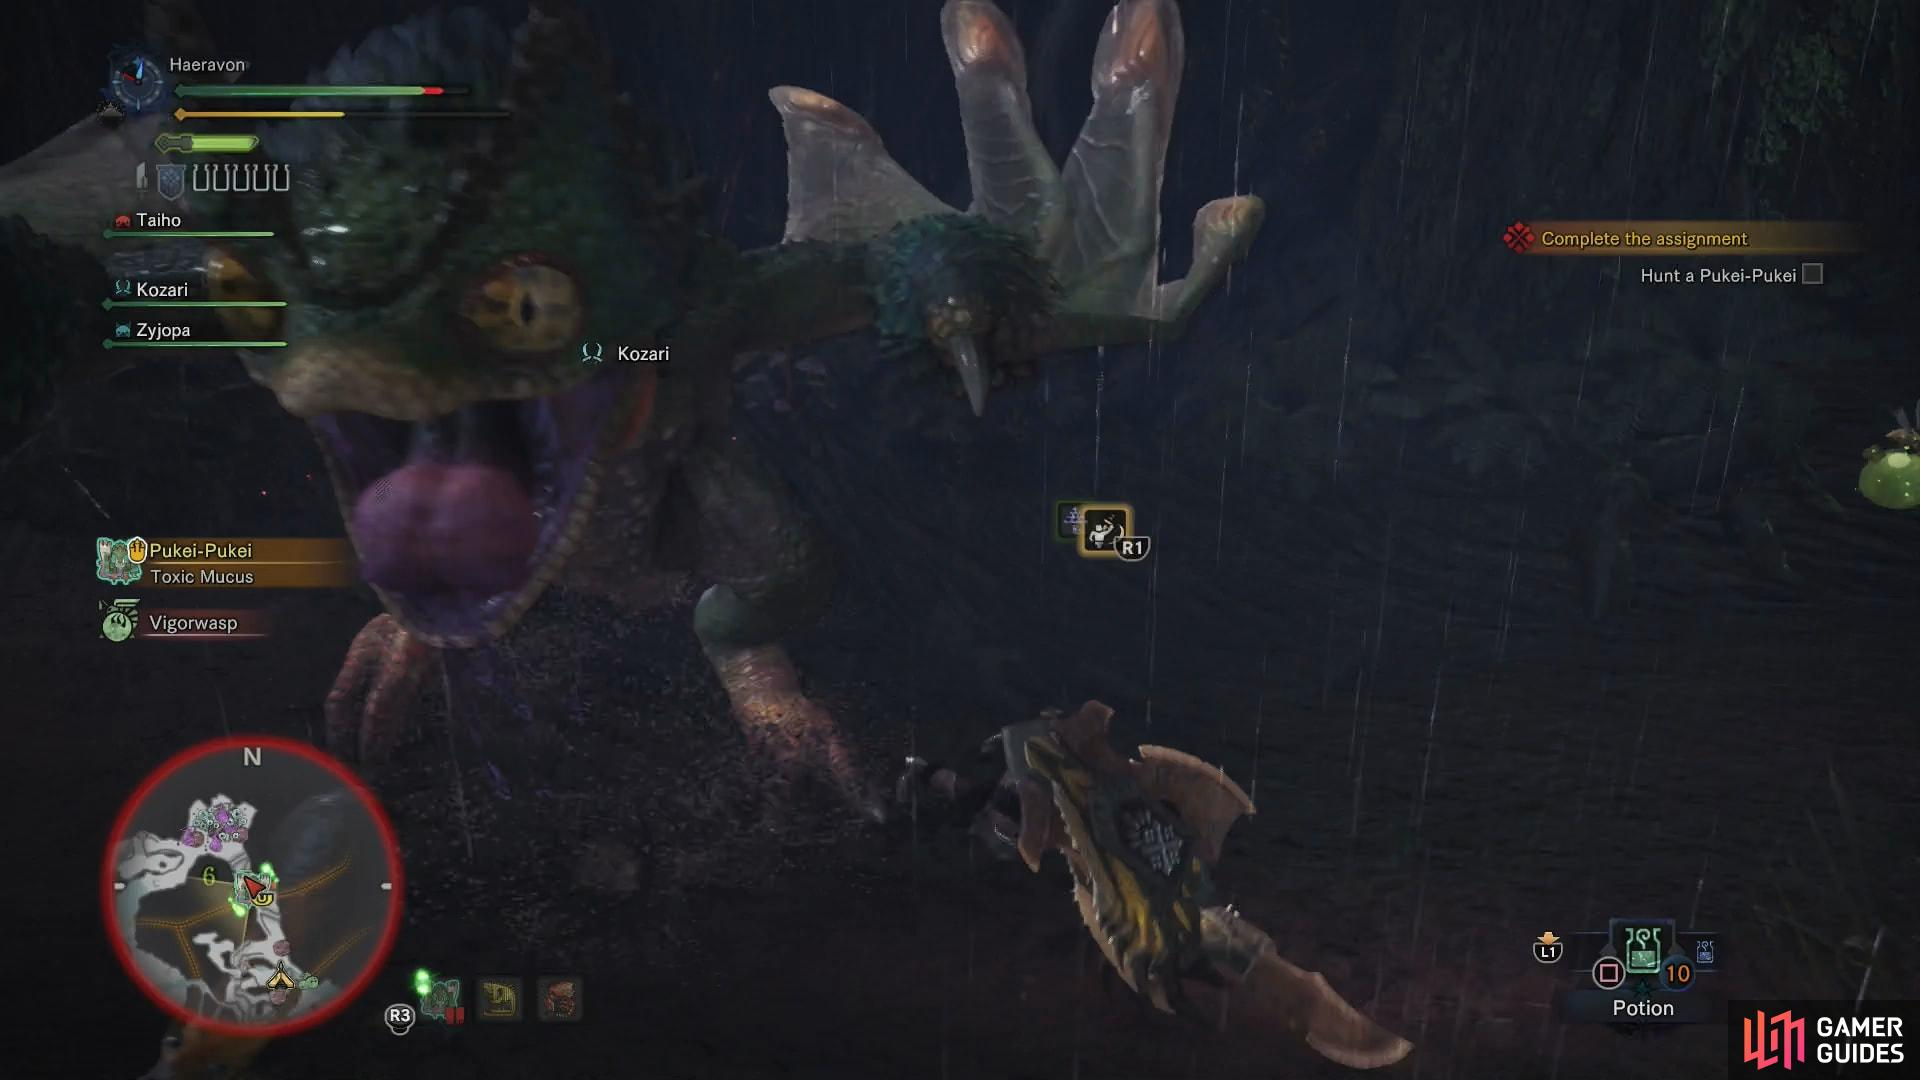 The Pukei-Pukei can injure hunters by charging back and forth